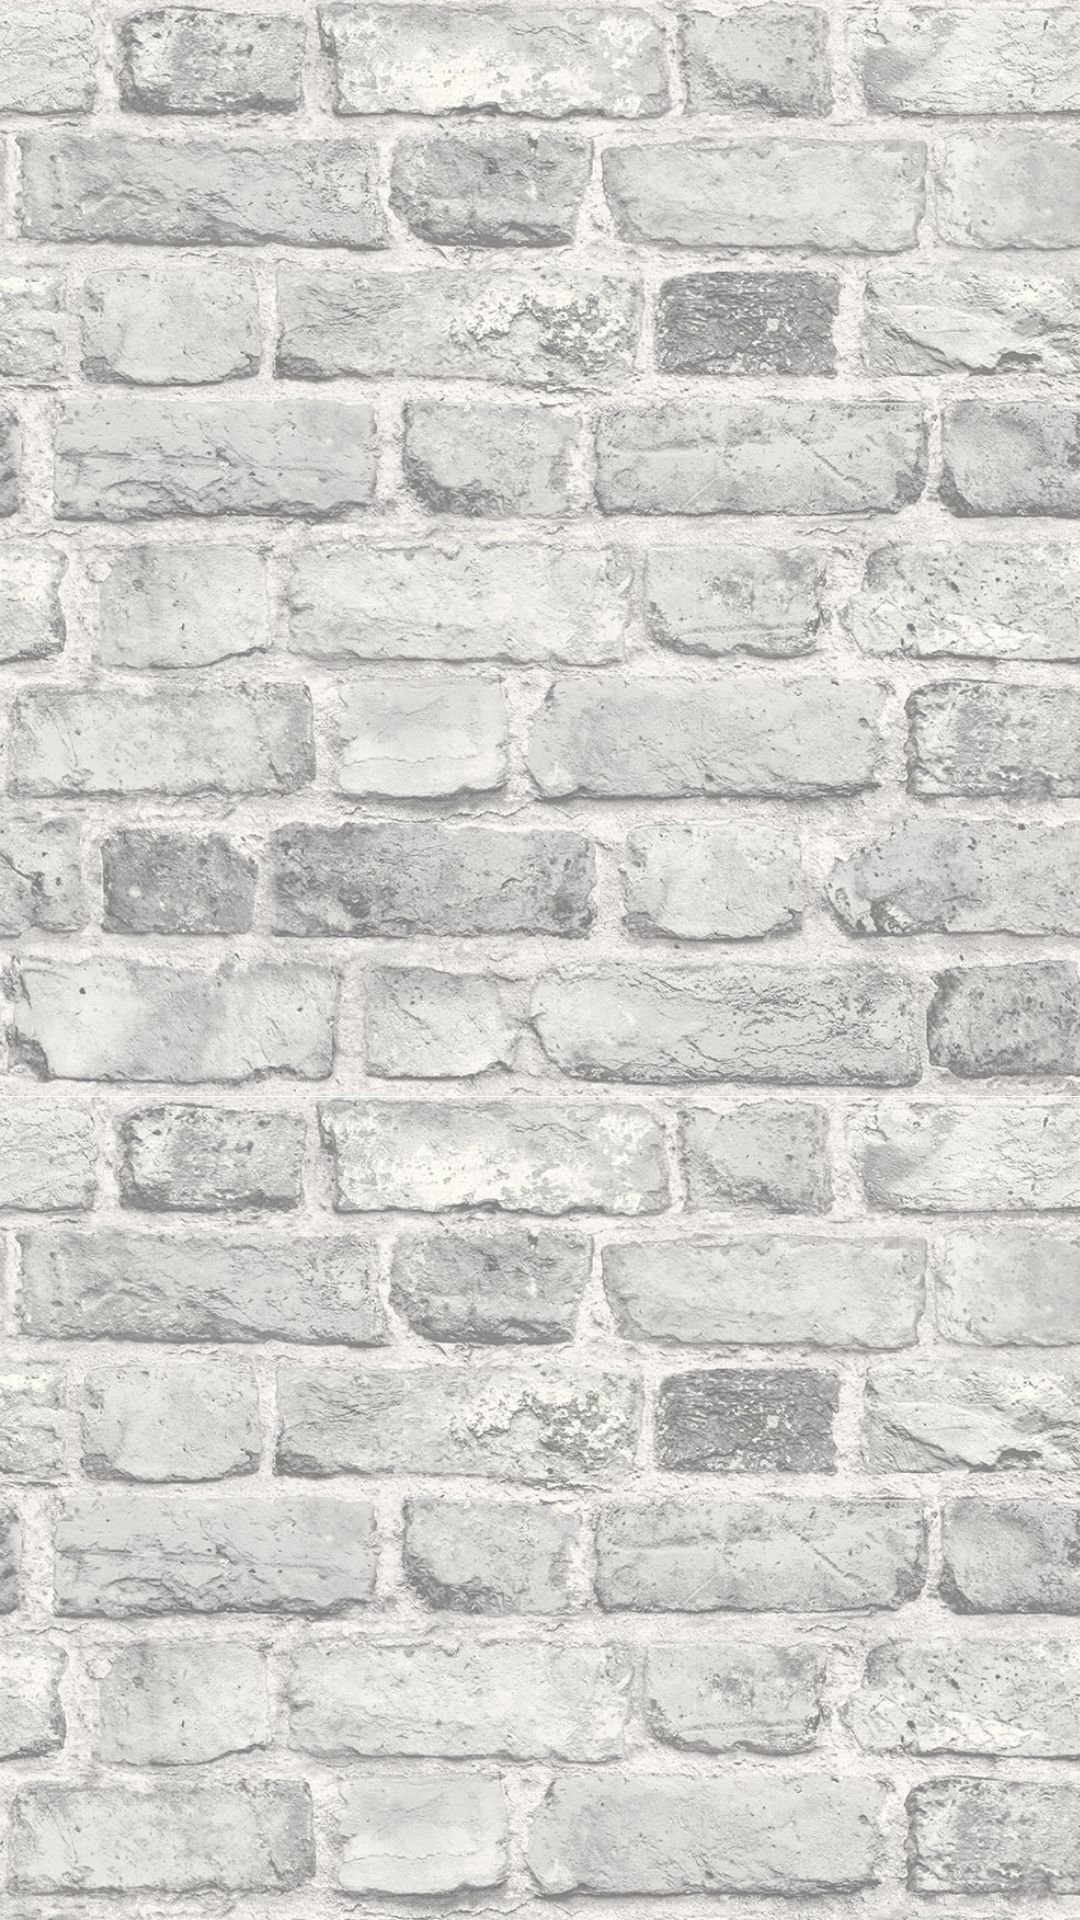 Battersea Brick Wall Effect Wallpaper Grey Brick Wallpaper Bedroom Brick Wallpaper Brick Effect Wallpaper